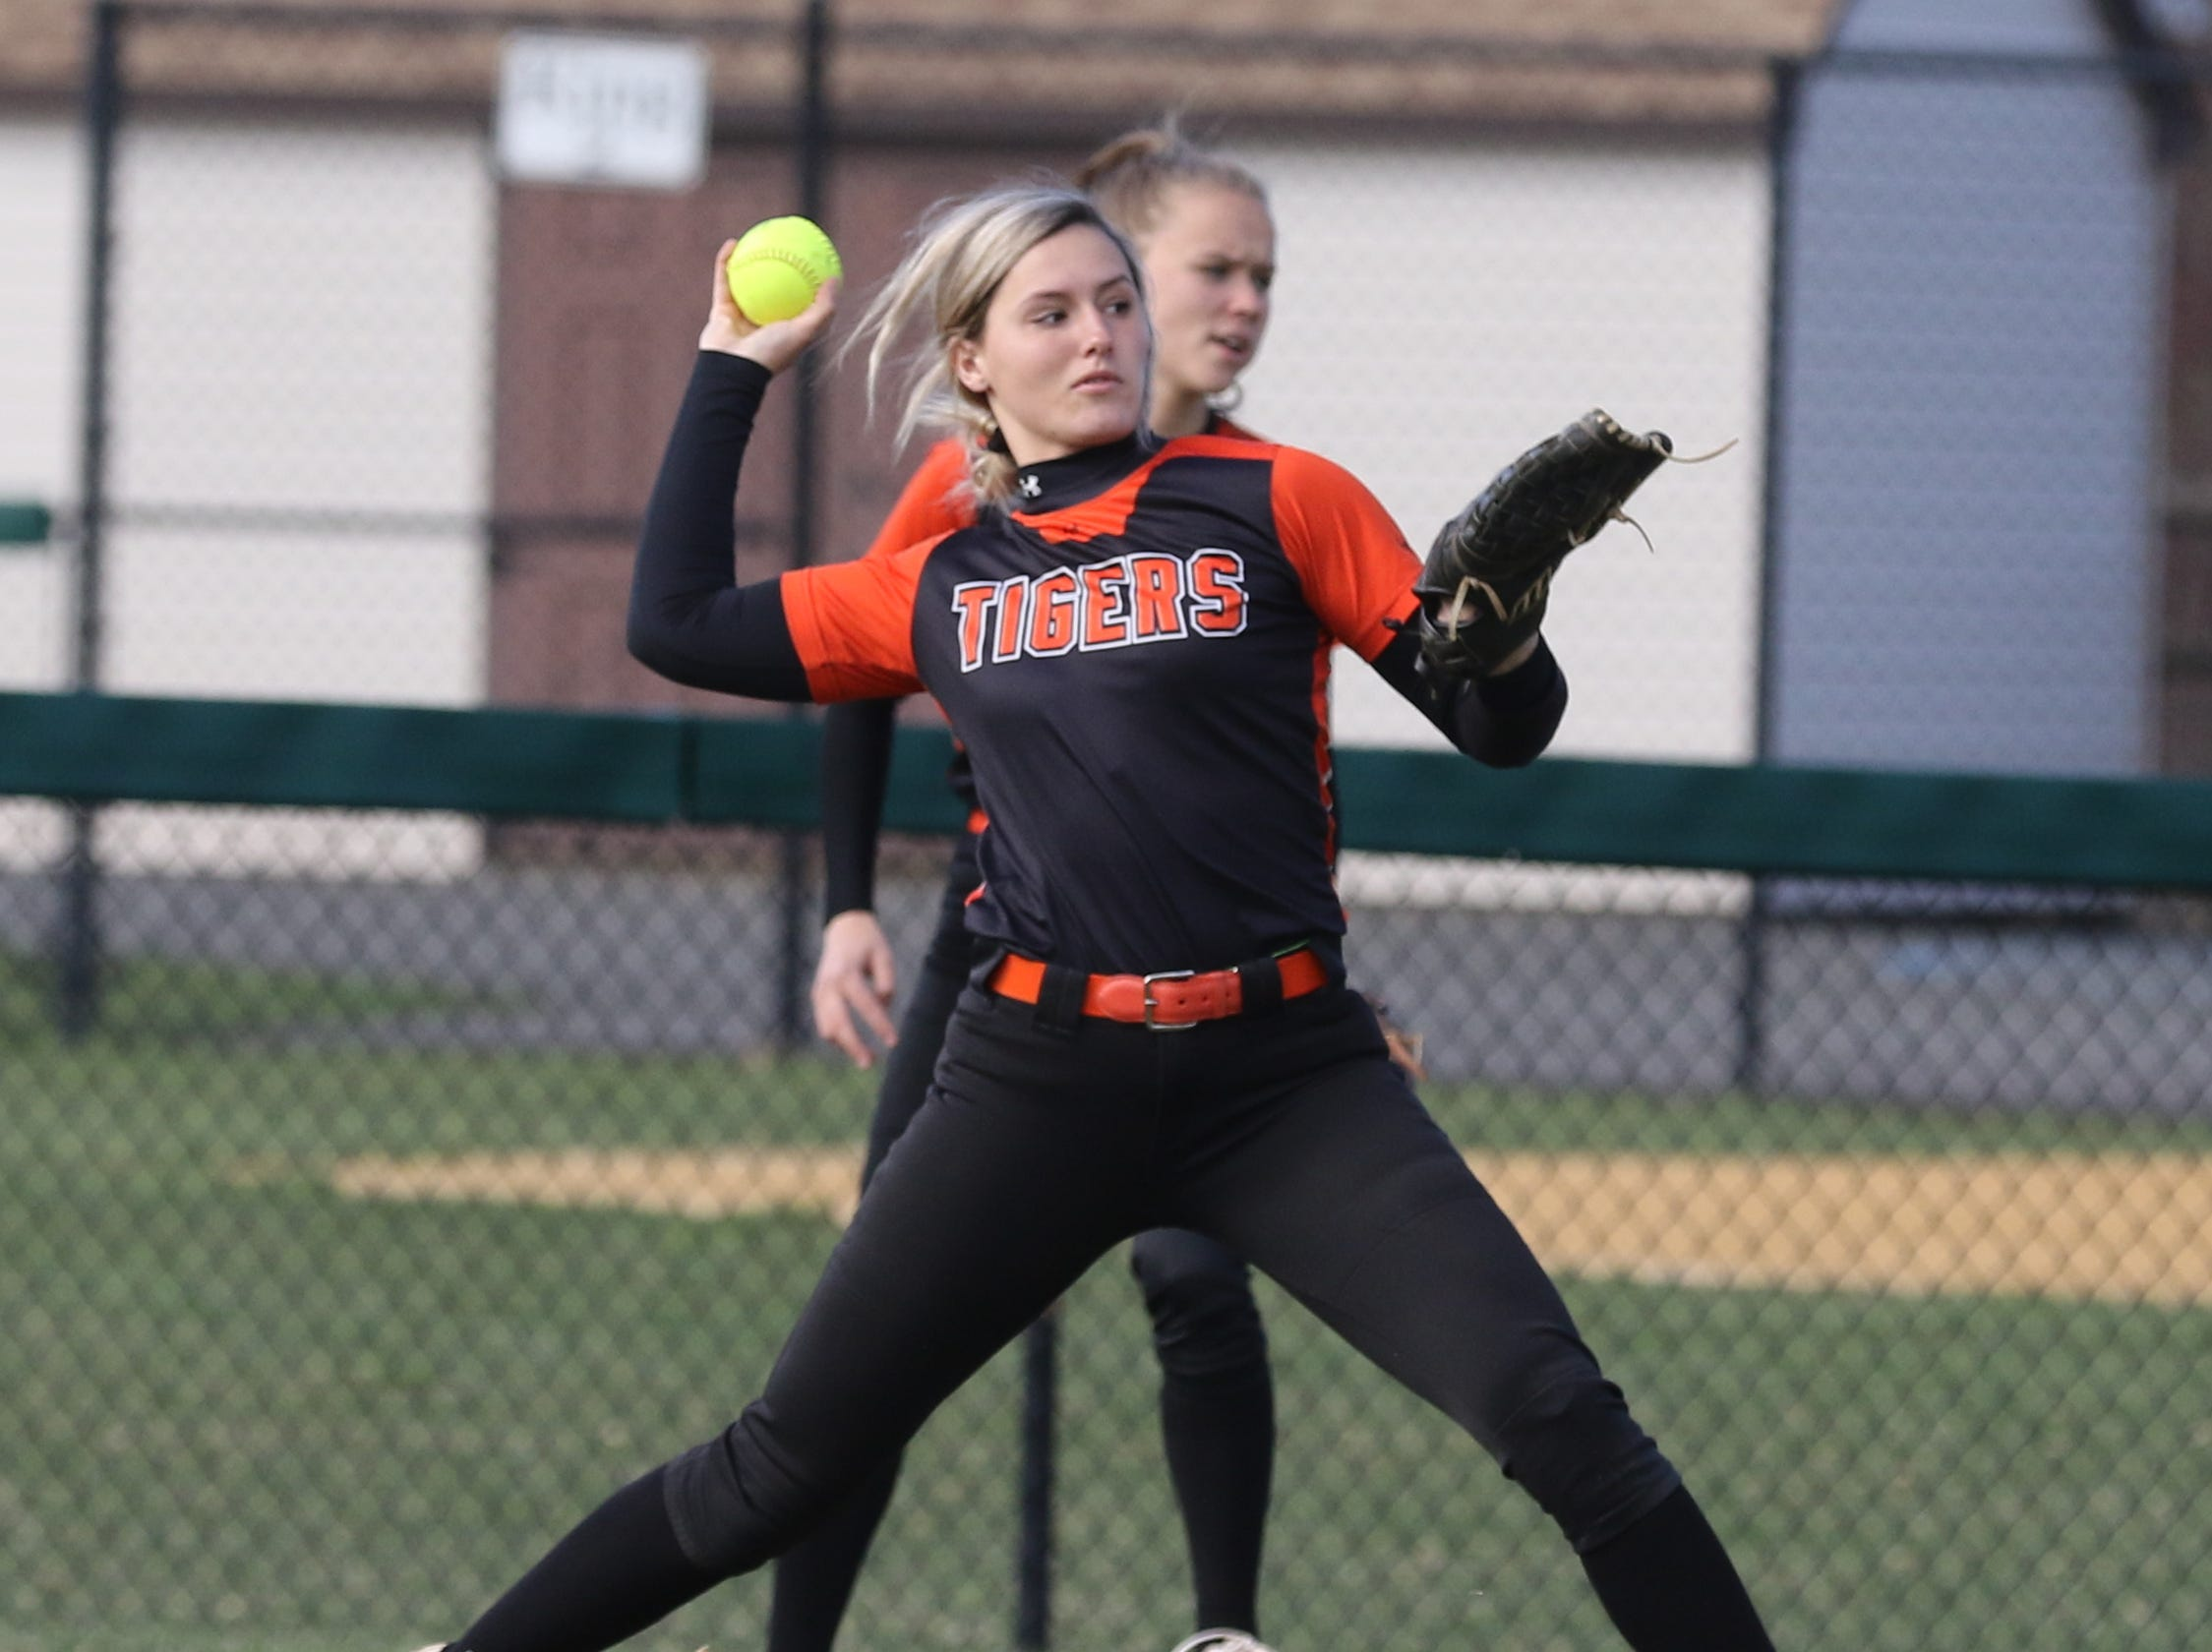 Hackettstown centerfielder Molly O'Brien makes this throw after making a catch to get a double play at first base.